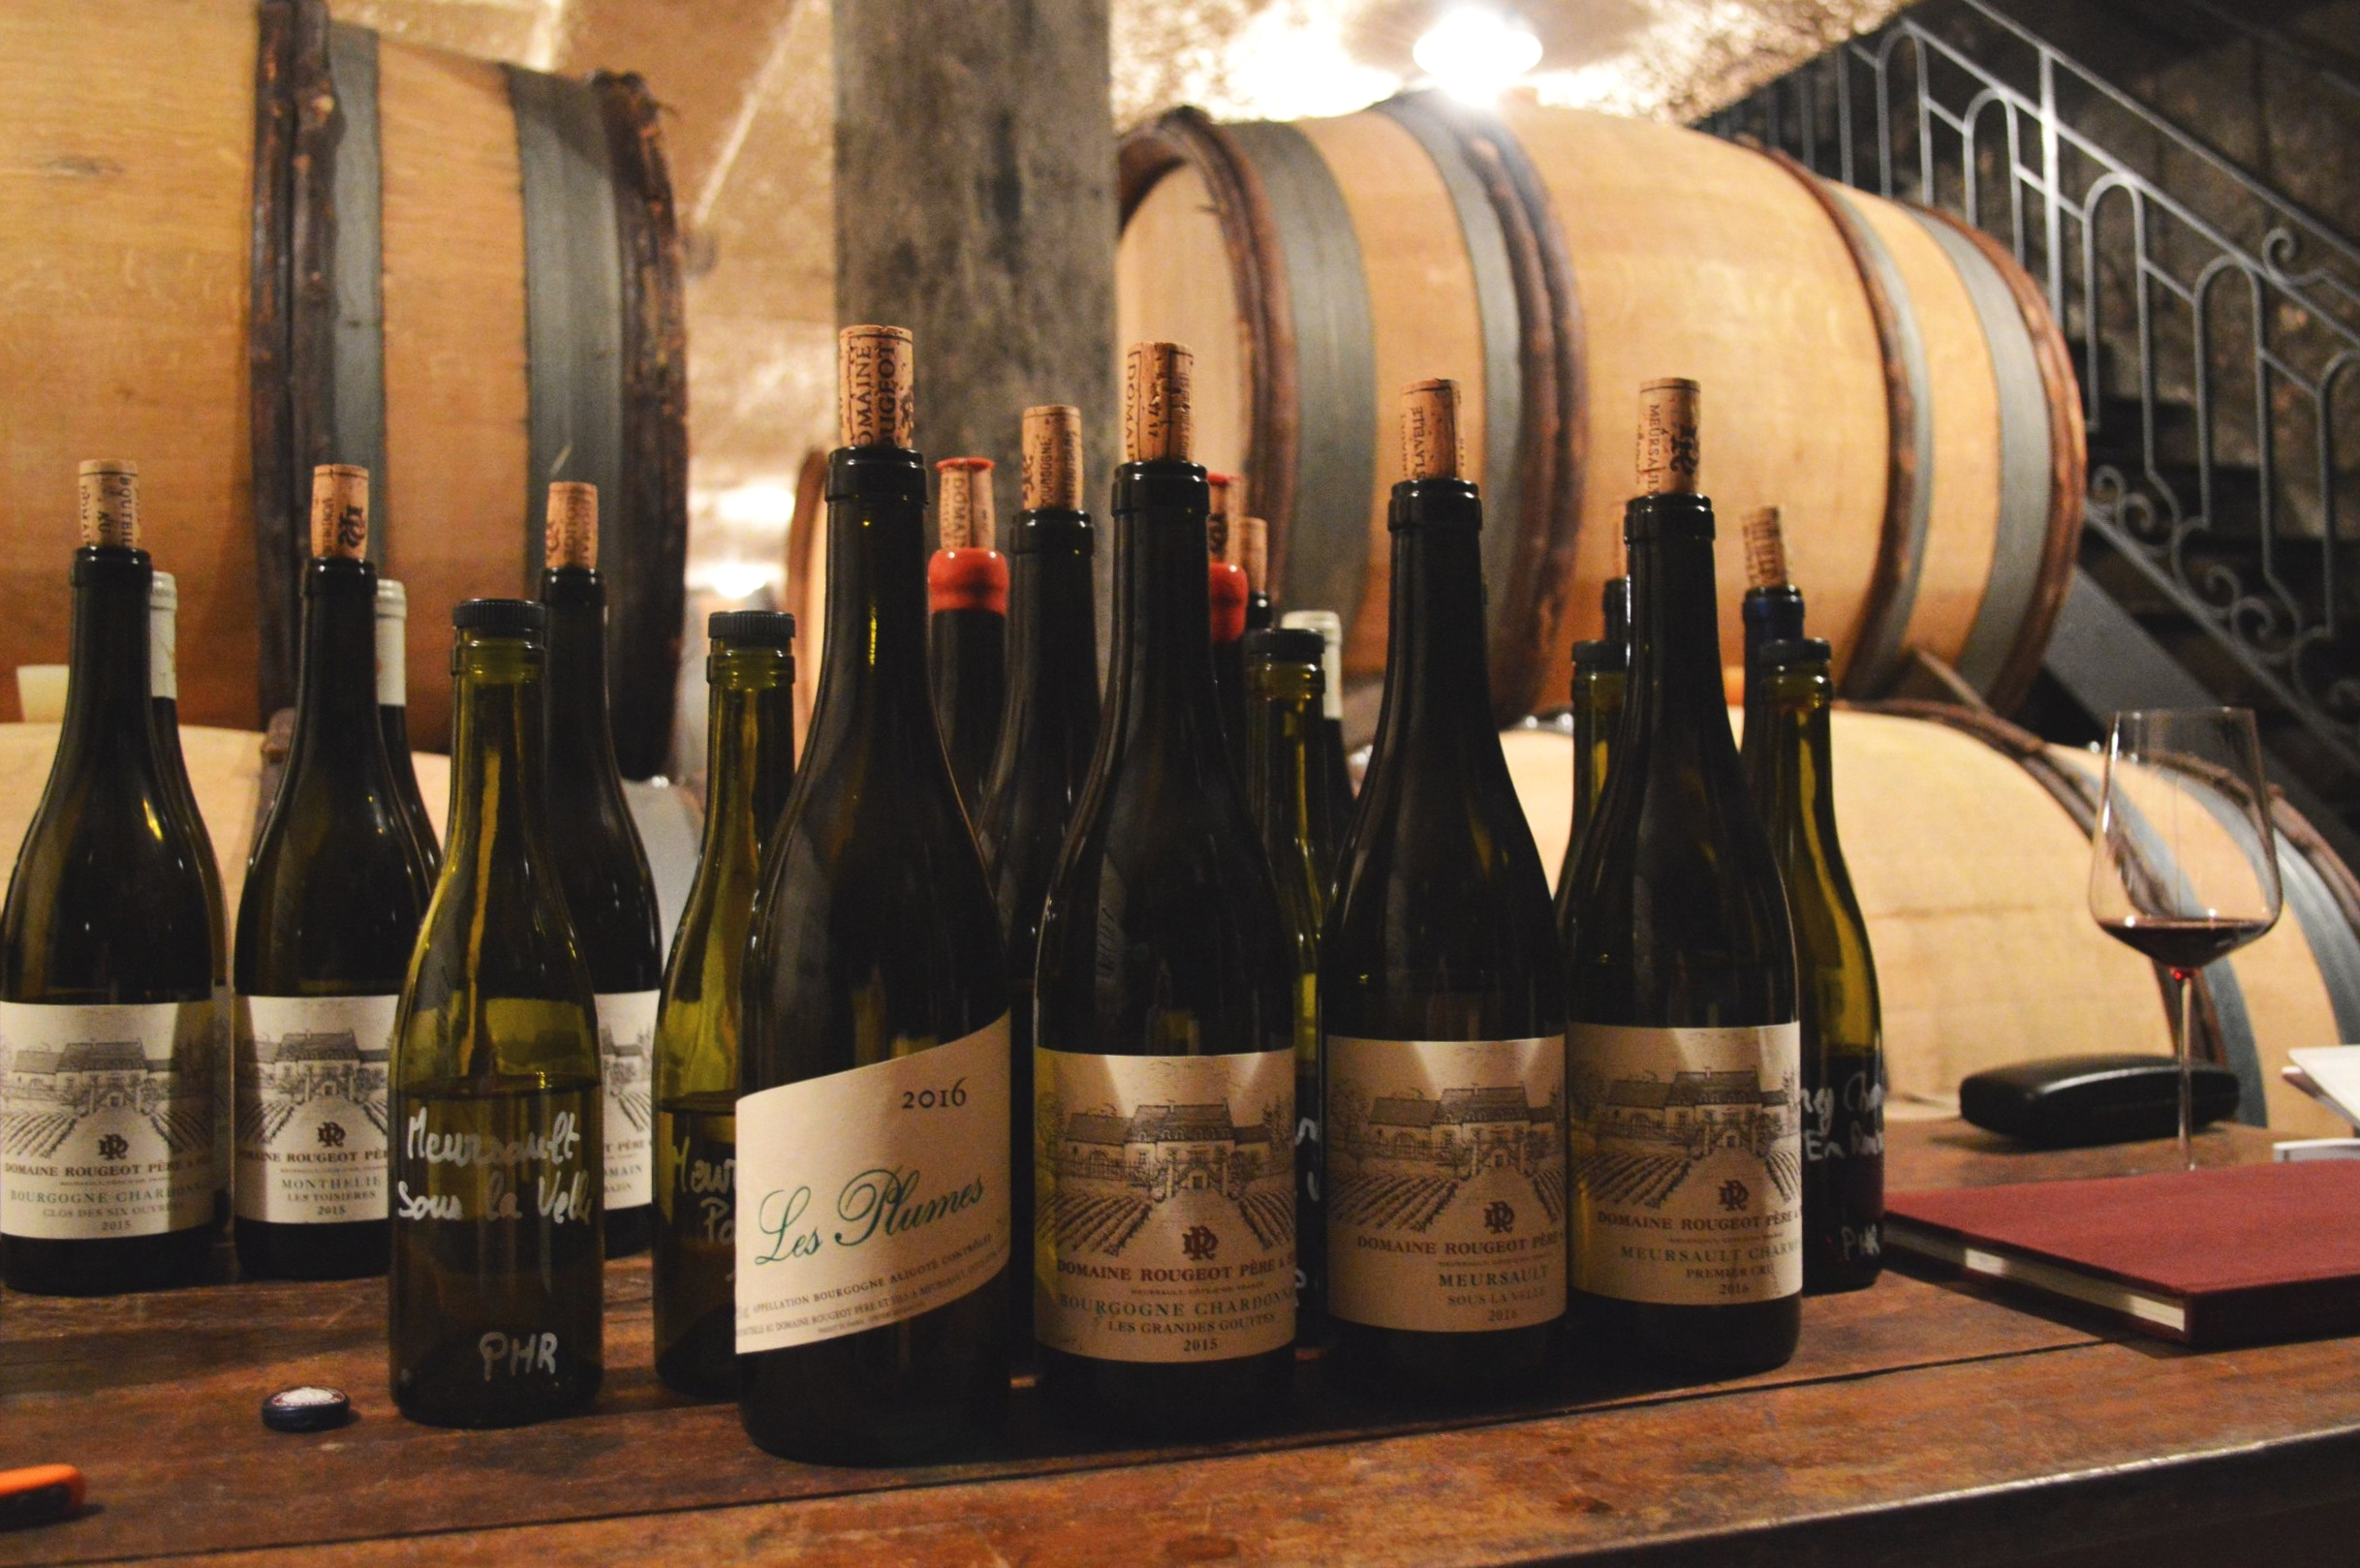 A tasting treat at Domaine Rougeot